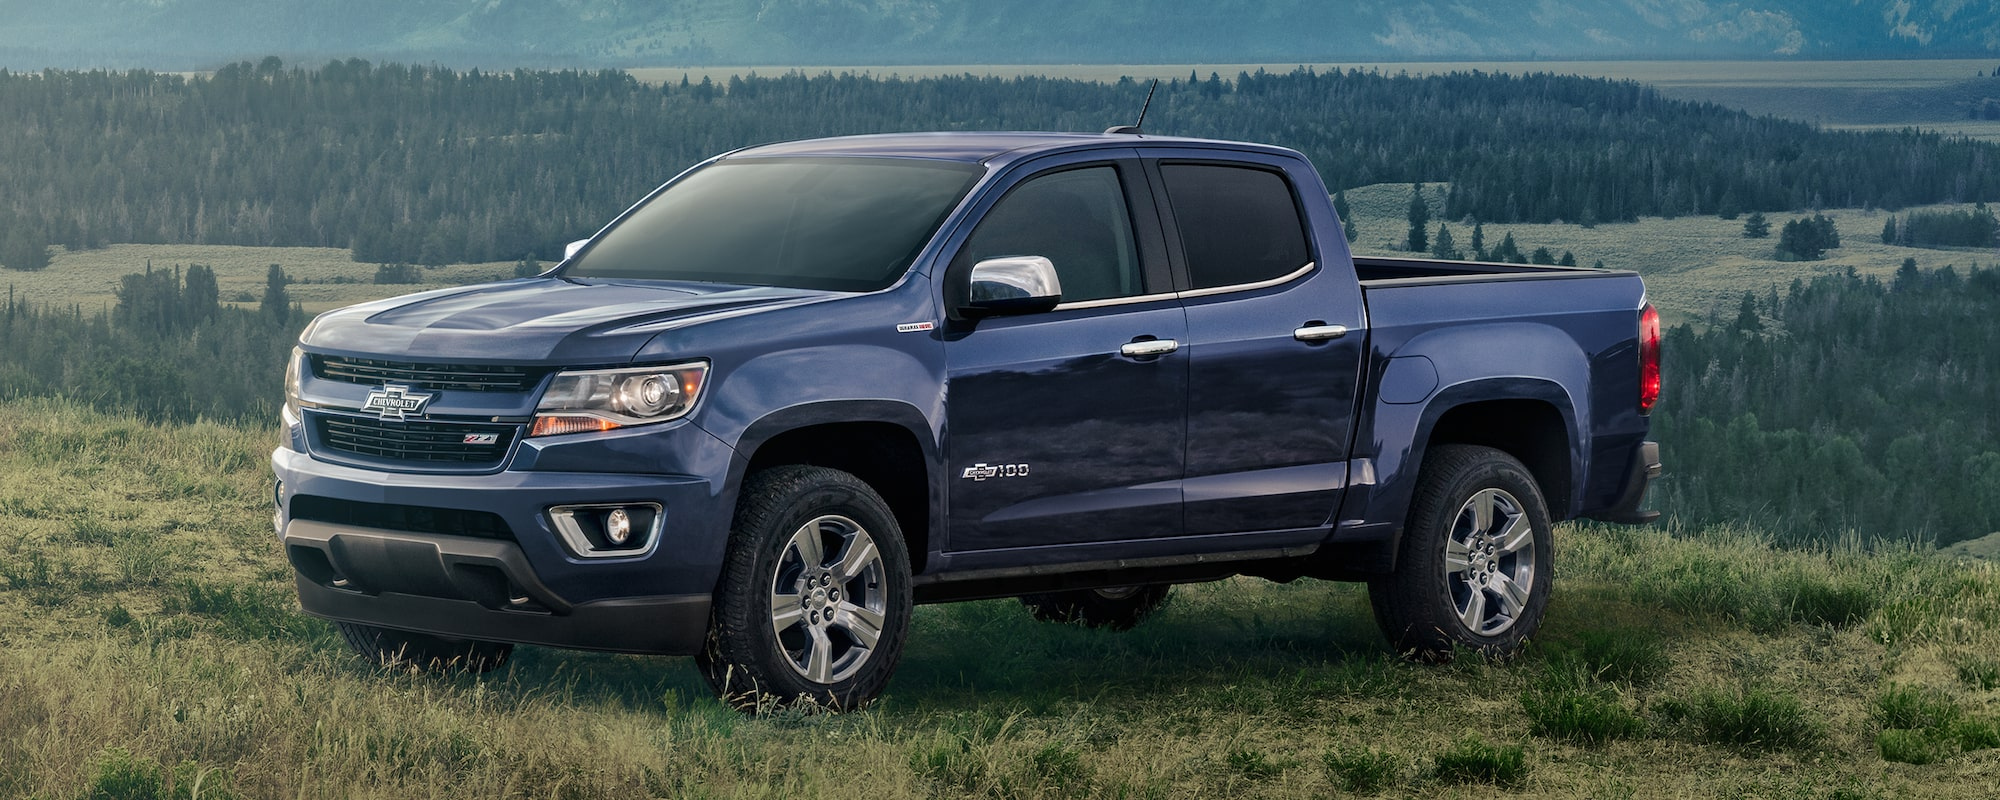 How many cylinders does a chevy colorado have